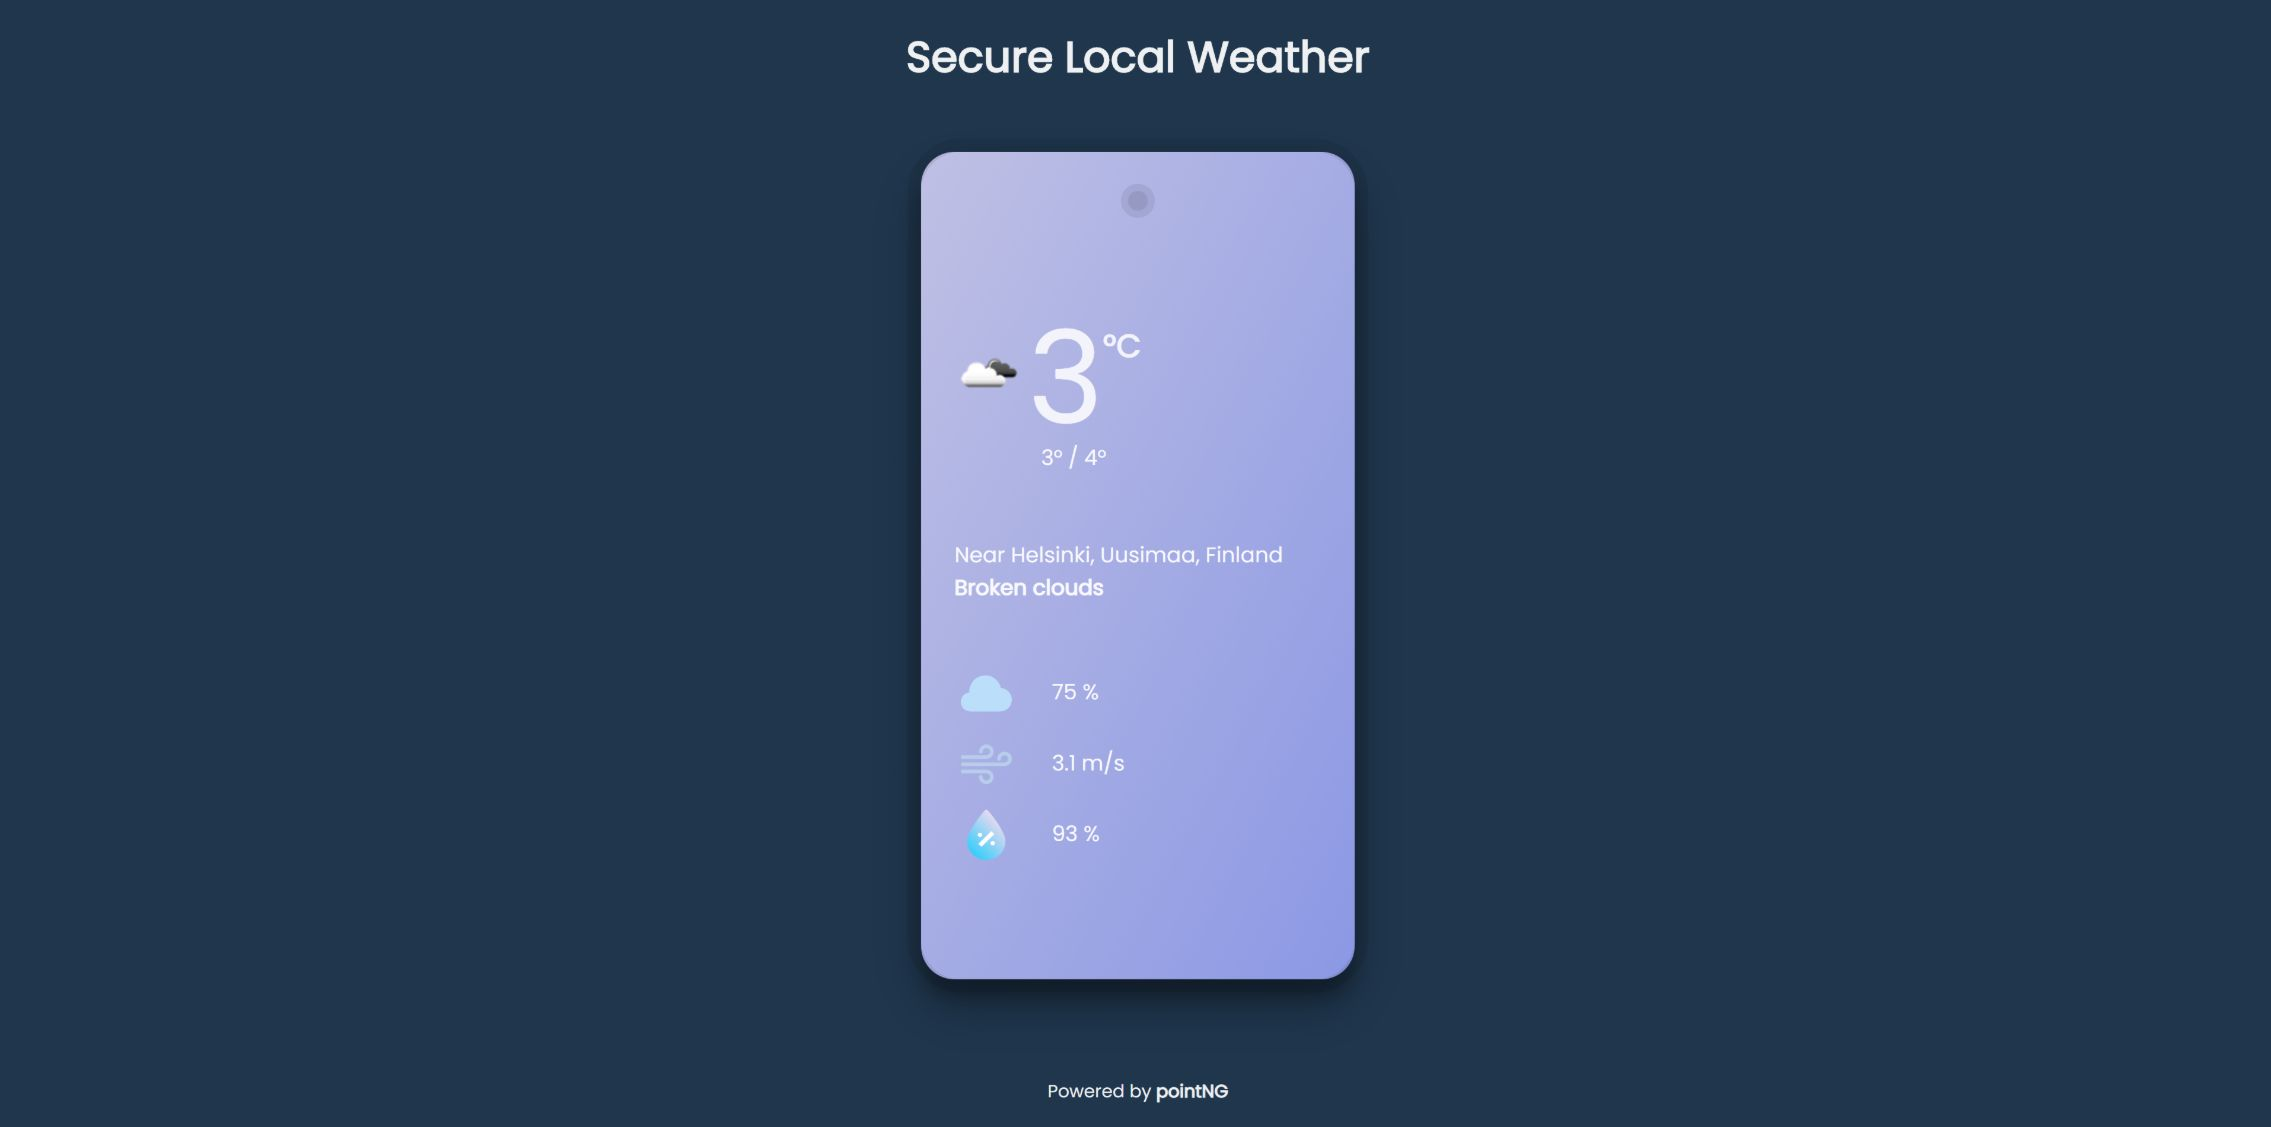 Secure local weather